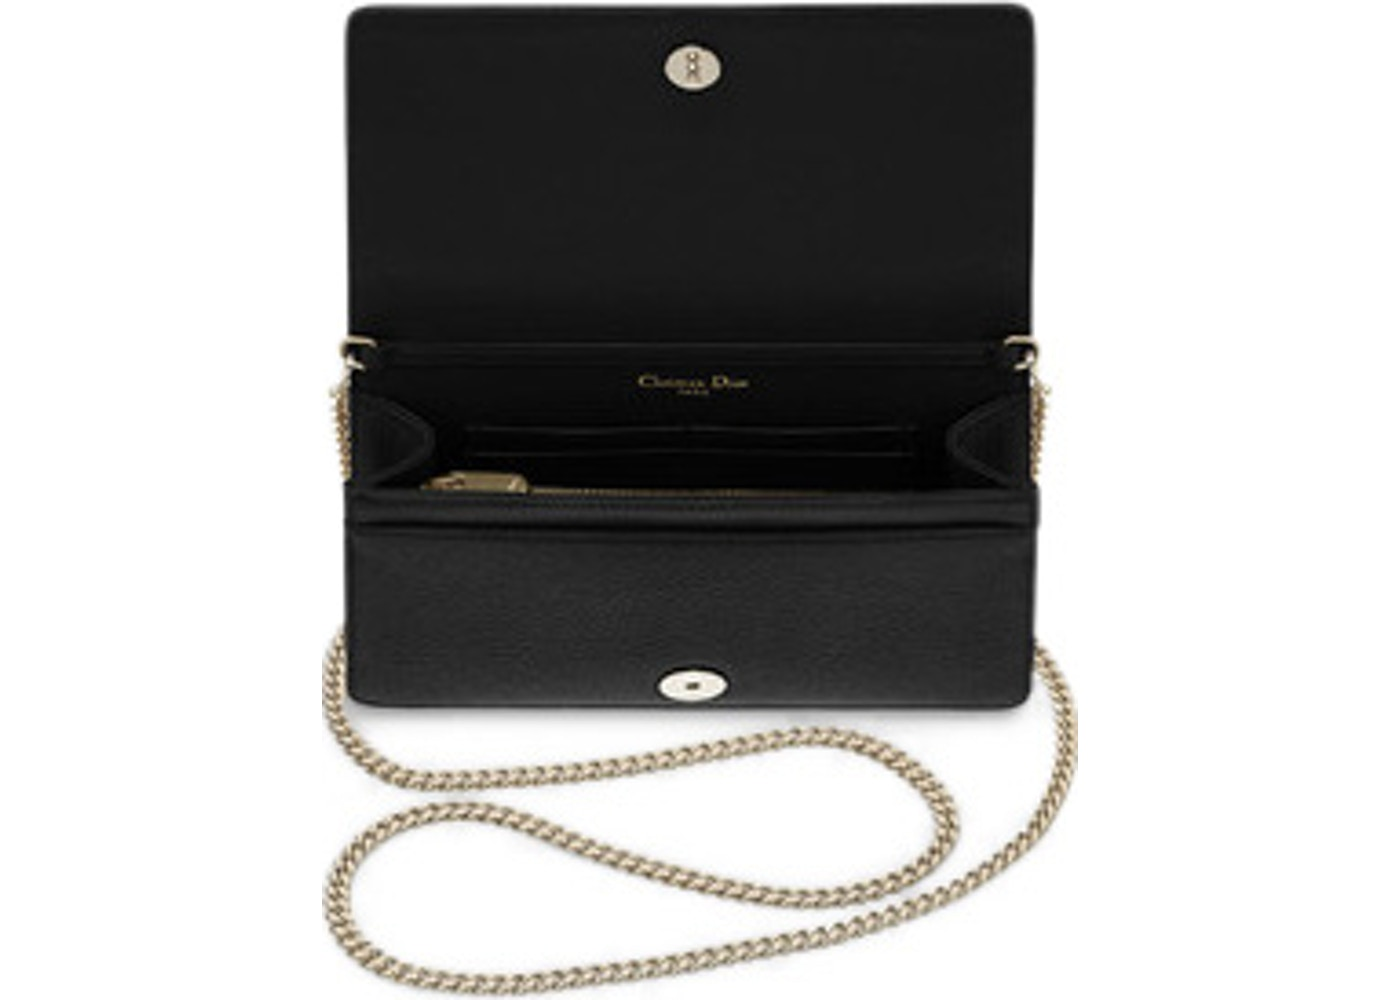 6a246462605 Dior Diorama Wallet on Chain Clutch Grained Calfskin Black